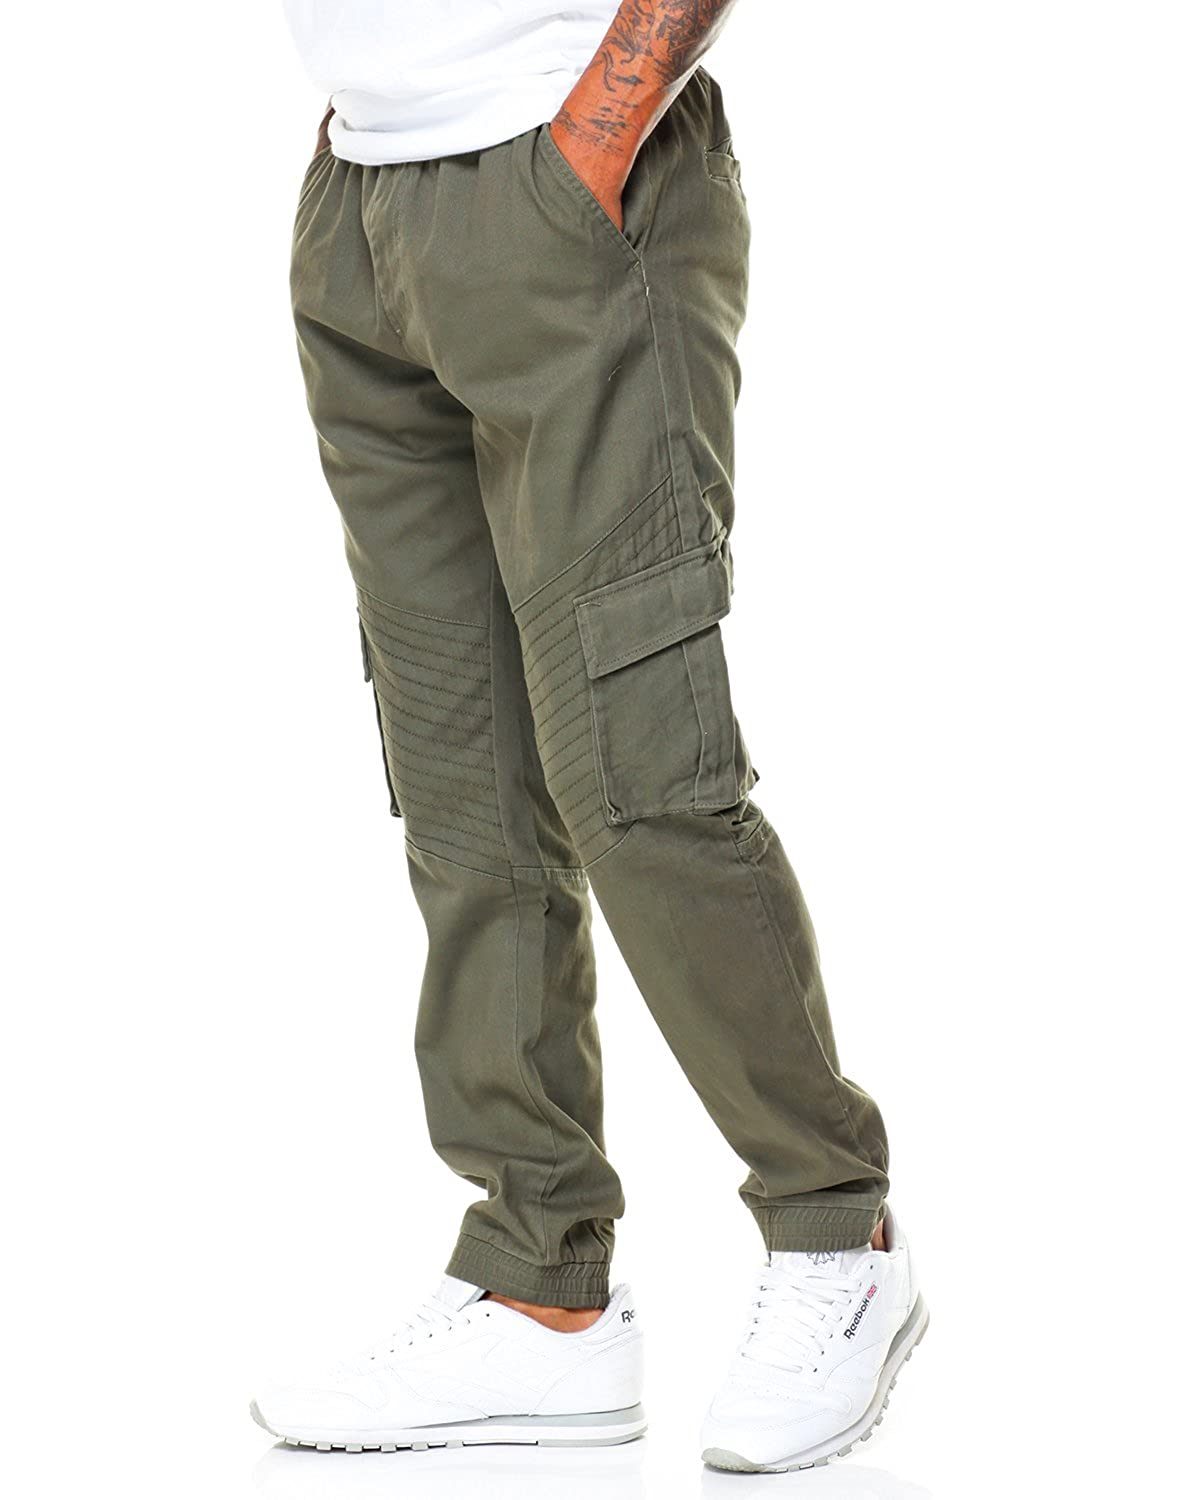 Pivaconis Mens Casual Straight Fit Drawstring Cargo Pants with Multi Pocket